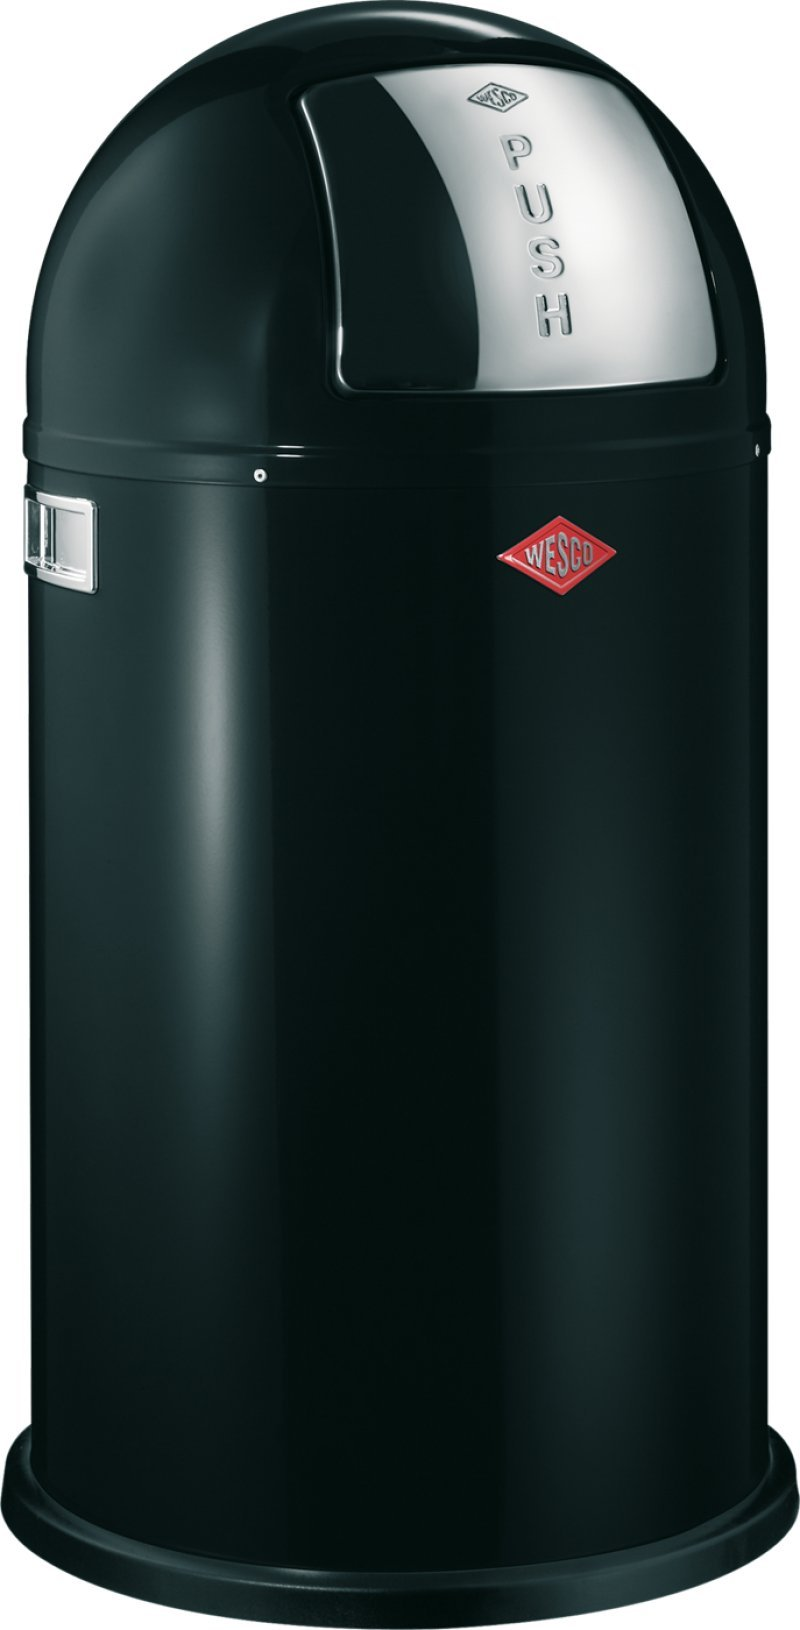 Wesco Pushboy - German Made - Push Door Trash Can, Powder Coated Steel, 13.2 Gallon / 50L , Black